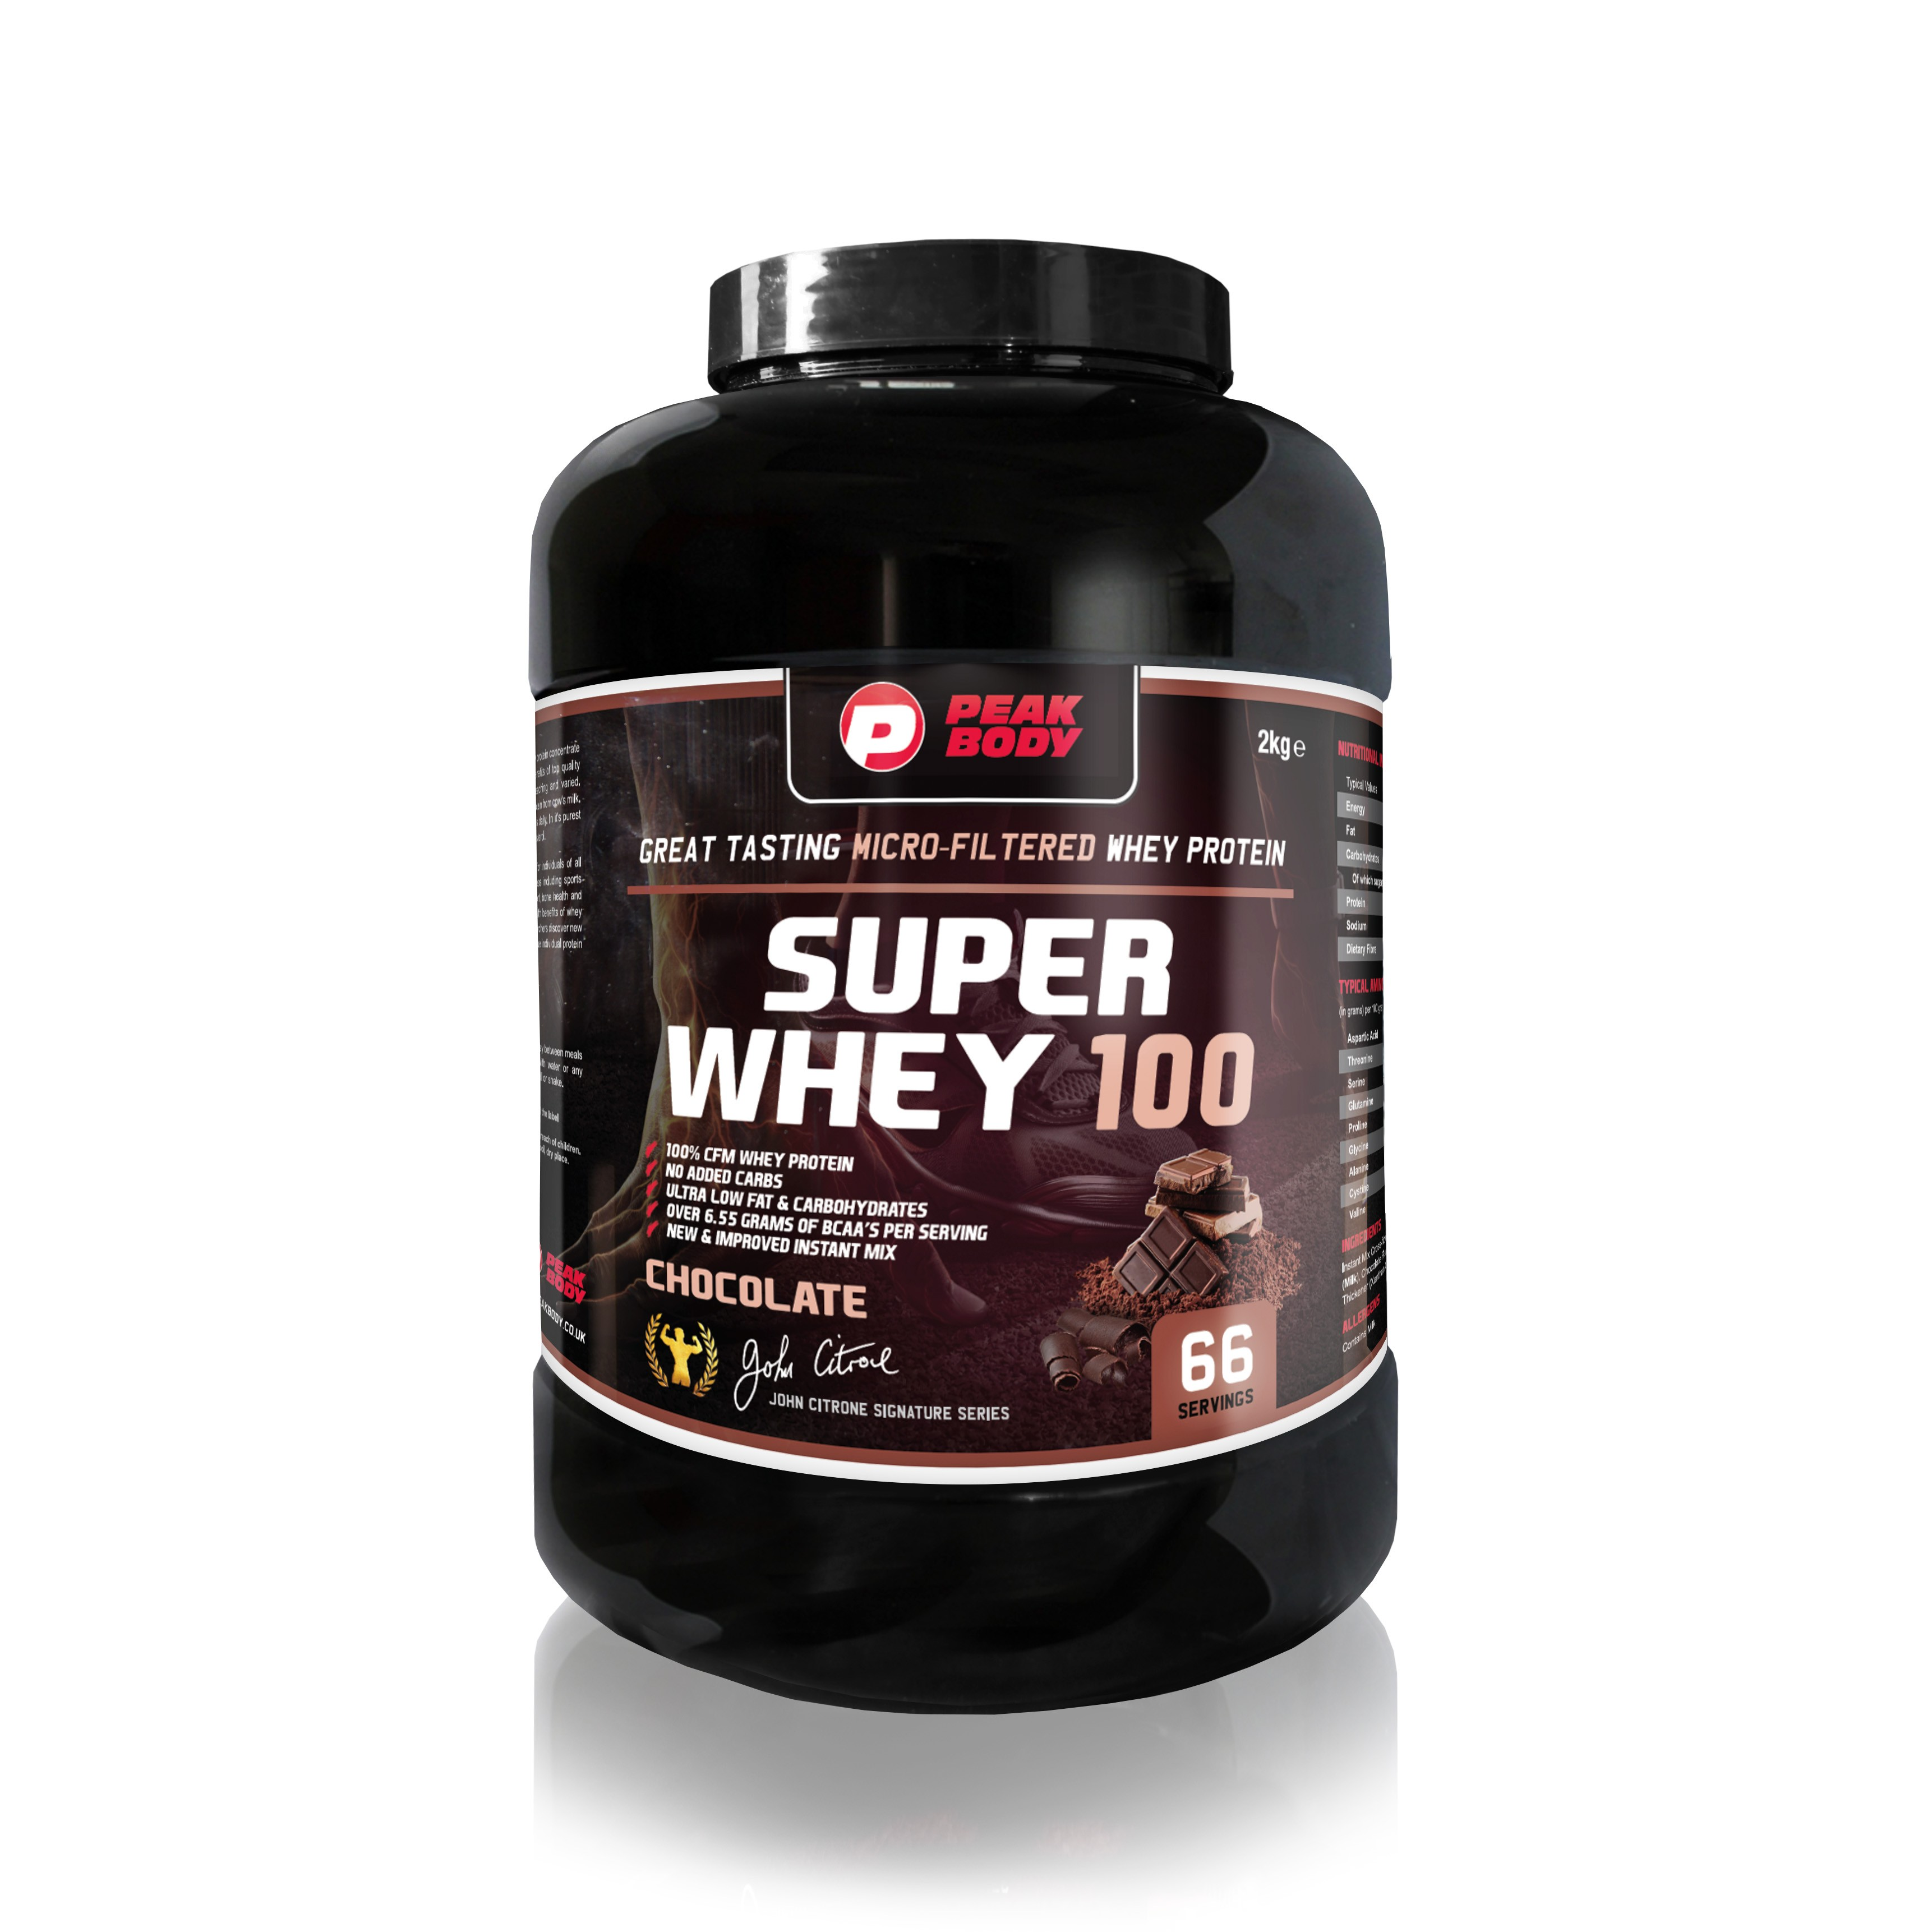 Superwhey 100: Getting the quality protein you need for maximum muscle growth.